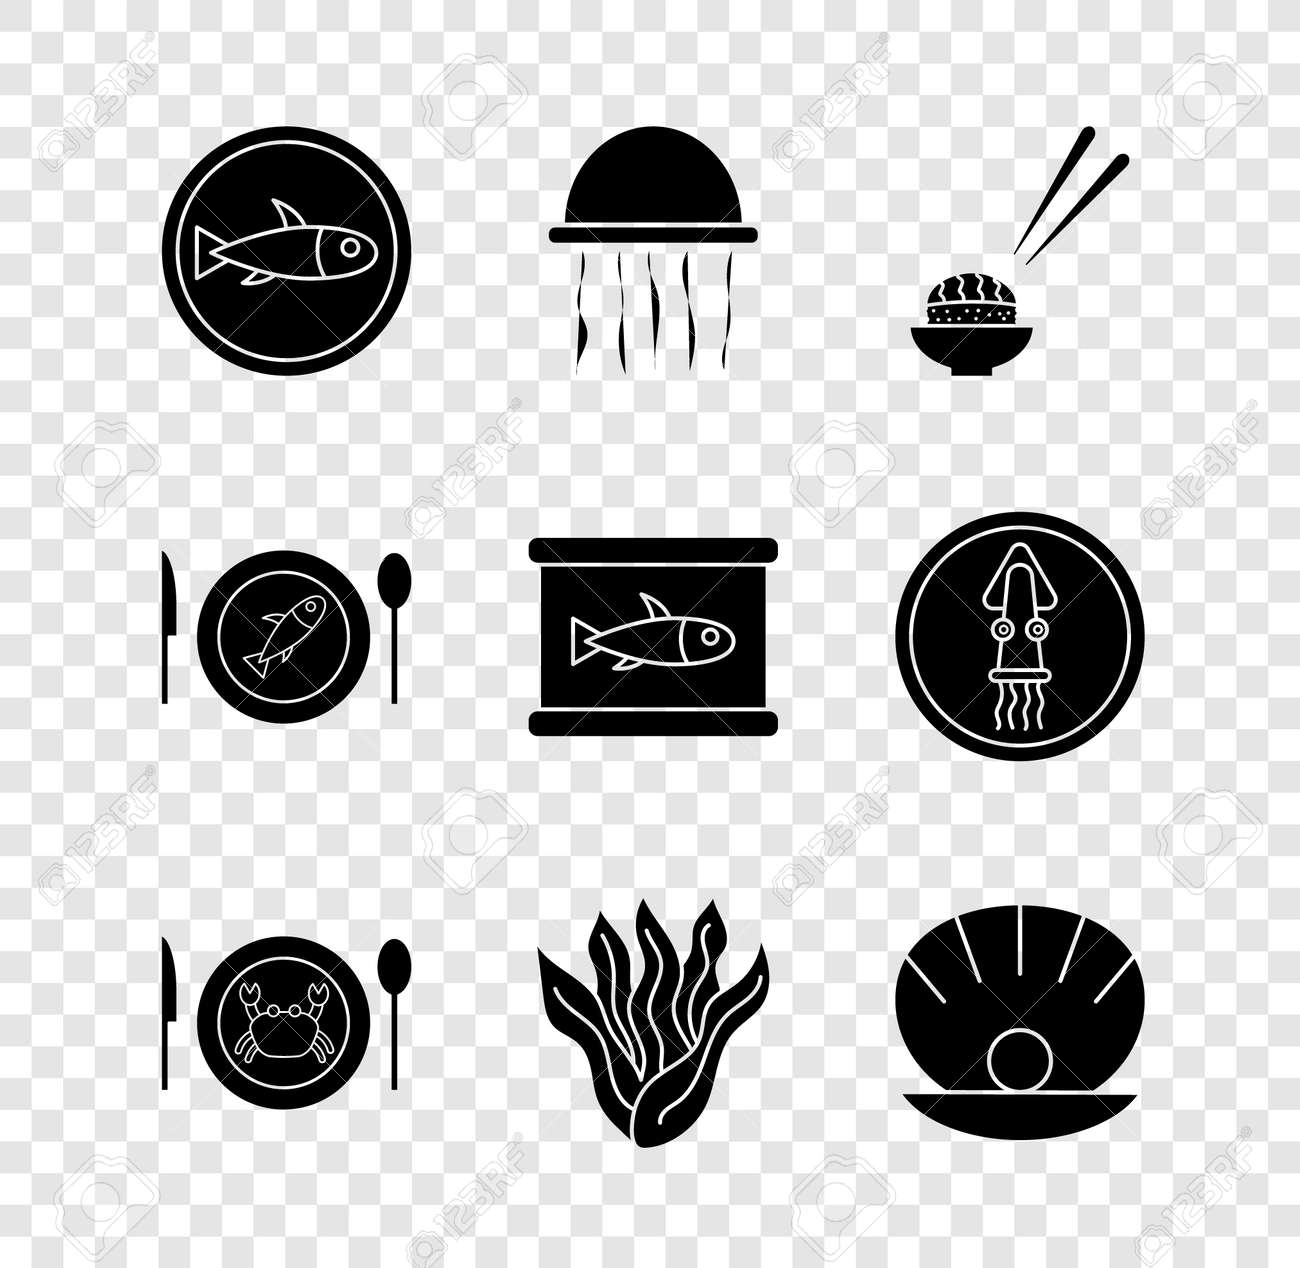 Set Served fish on a plate, Jellyfish, Sushi, crab, Seaweed, Shell with pearl, and Canned icon. Vector - 171781086